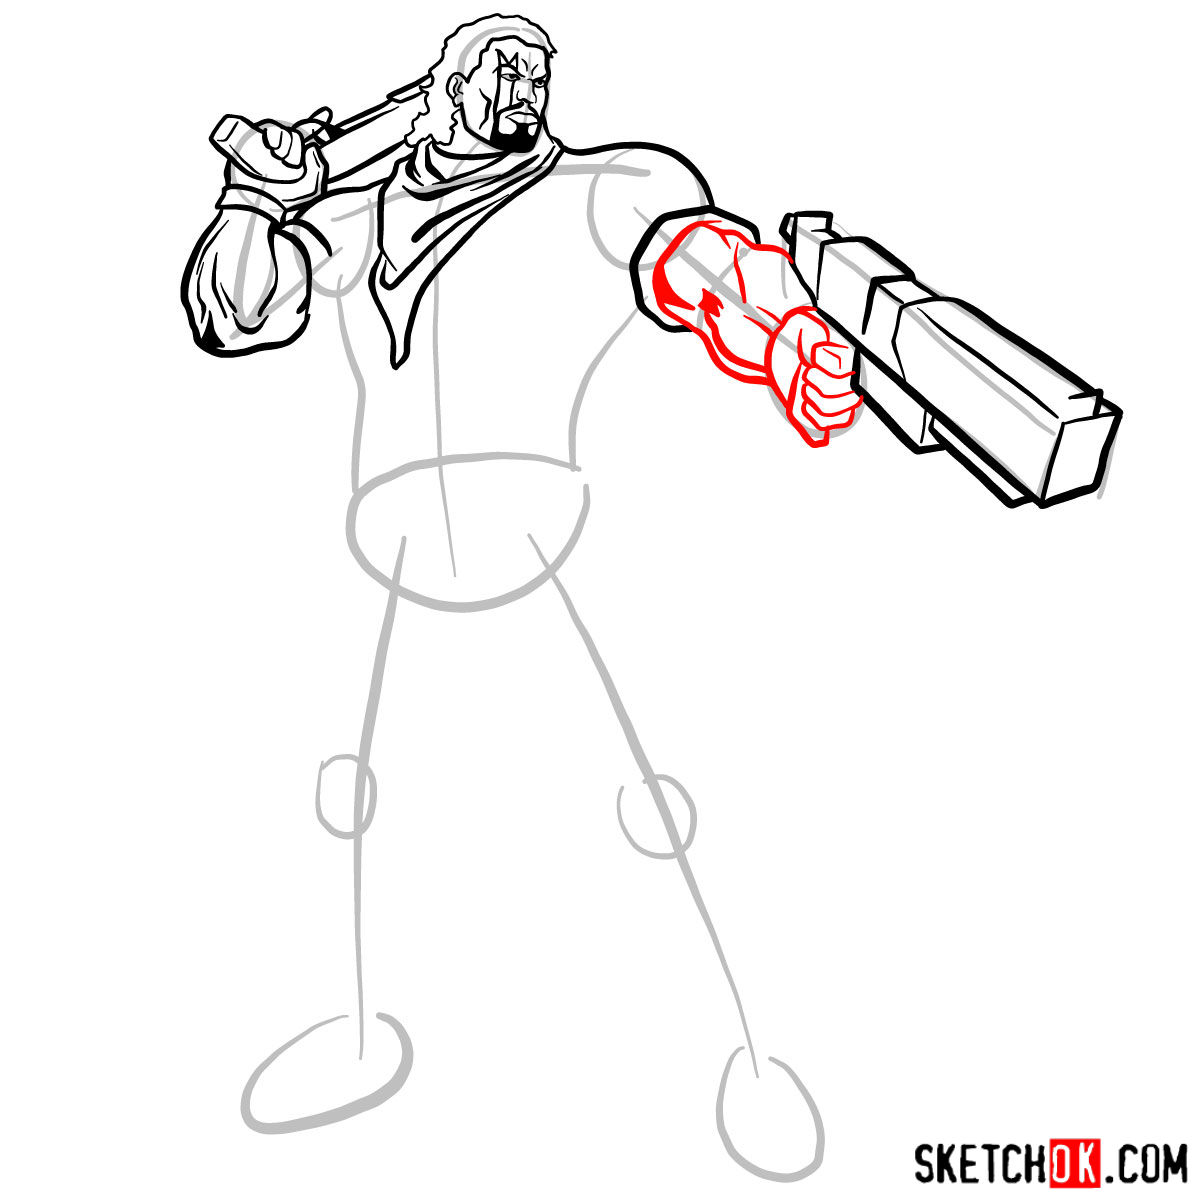 How to draw Lucas Bishop, a mutant from X-Men series - step 10